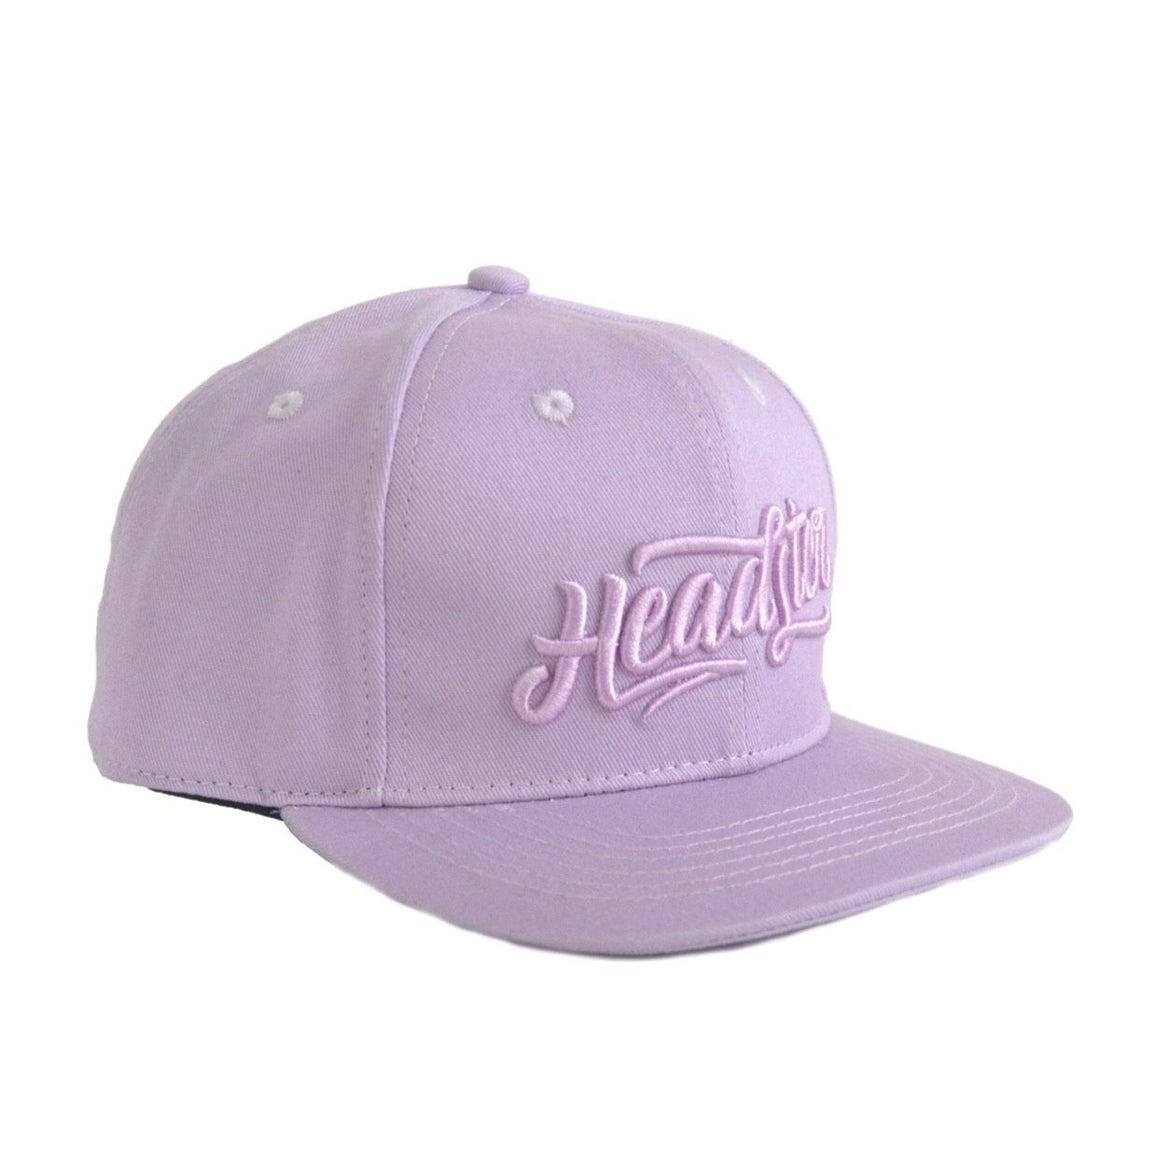 Headster - Everyday Cotton Candy Snapback Hats Headster